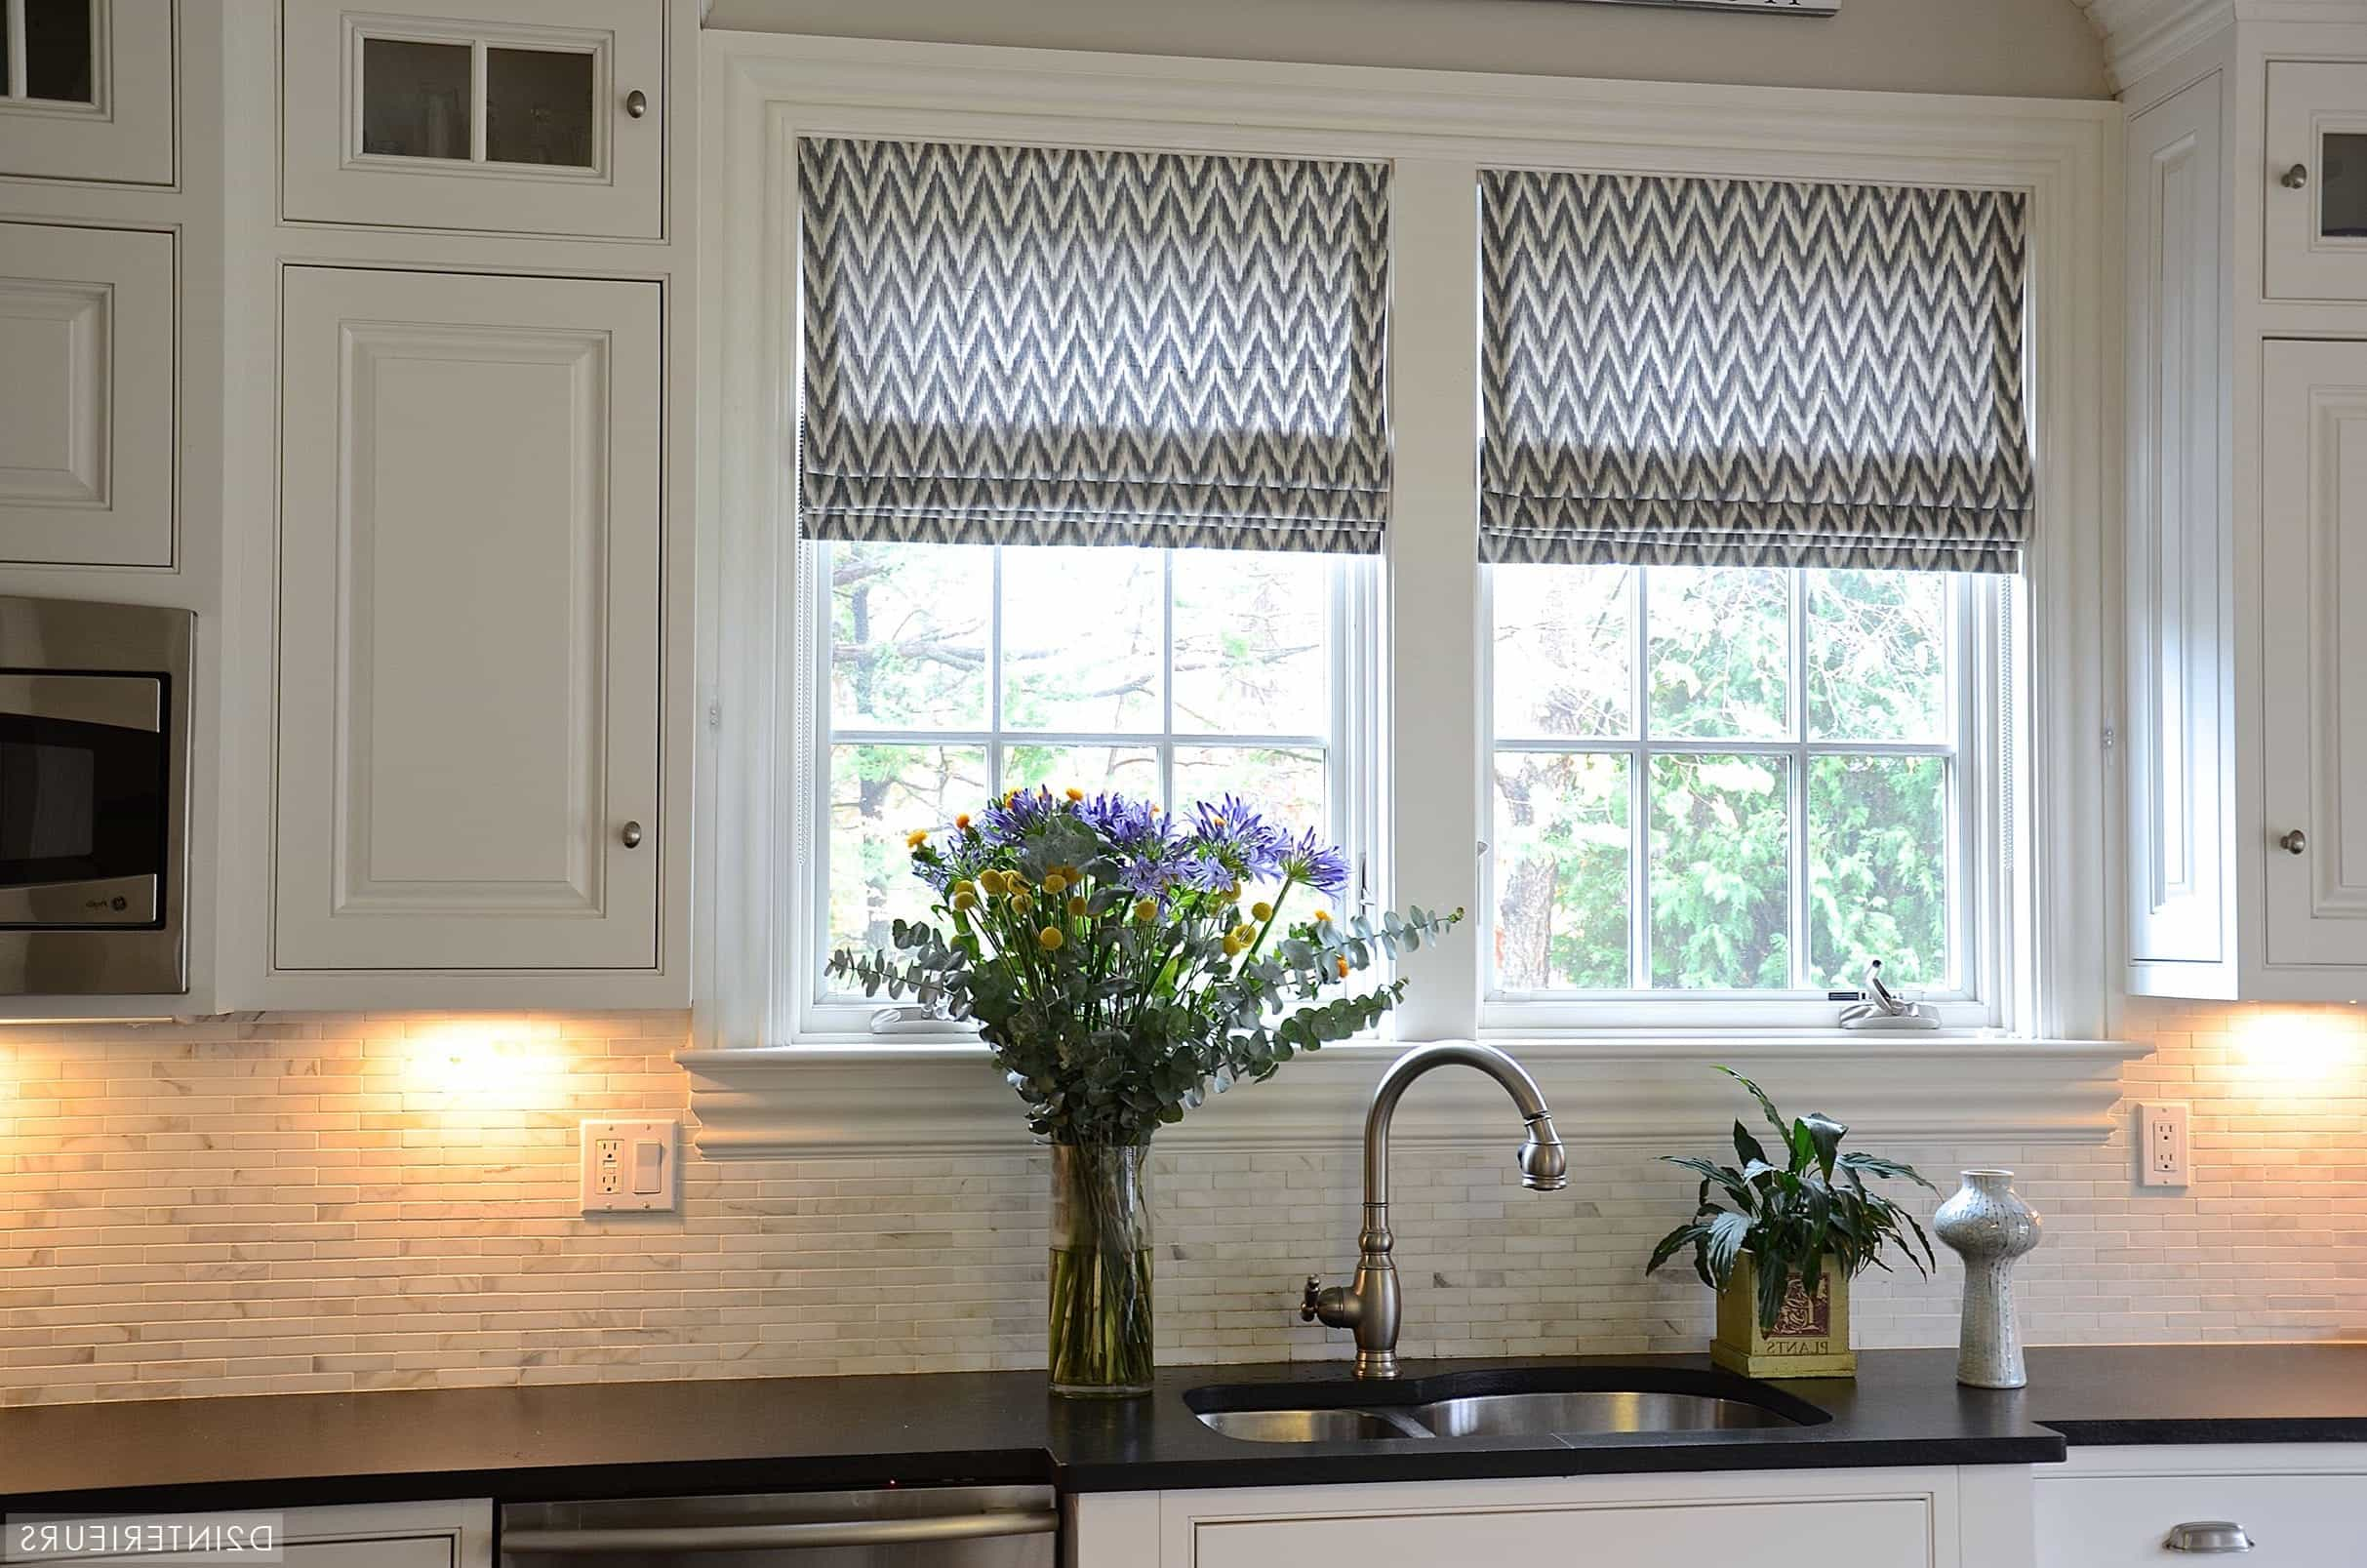 Chevron Roman Shades Pop In Black And White Curtain For Traditional Kitchen  Window (Image 1